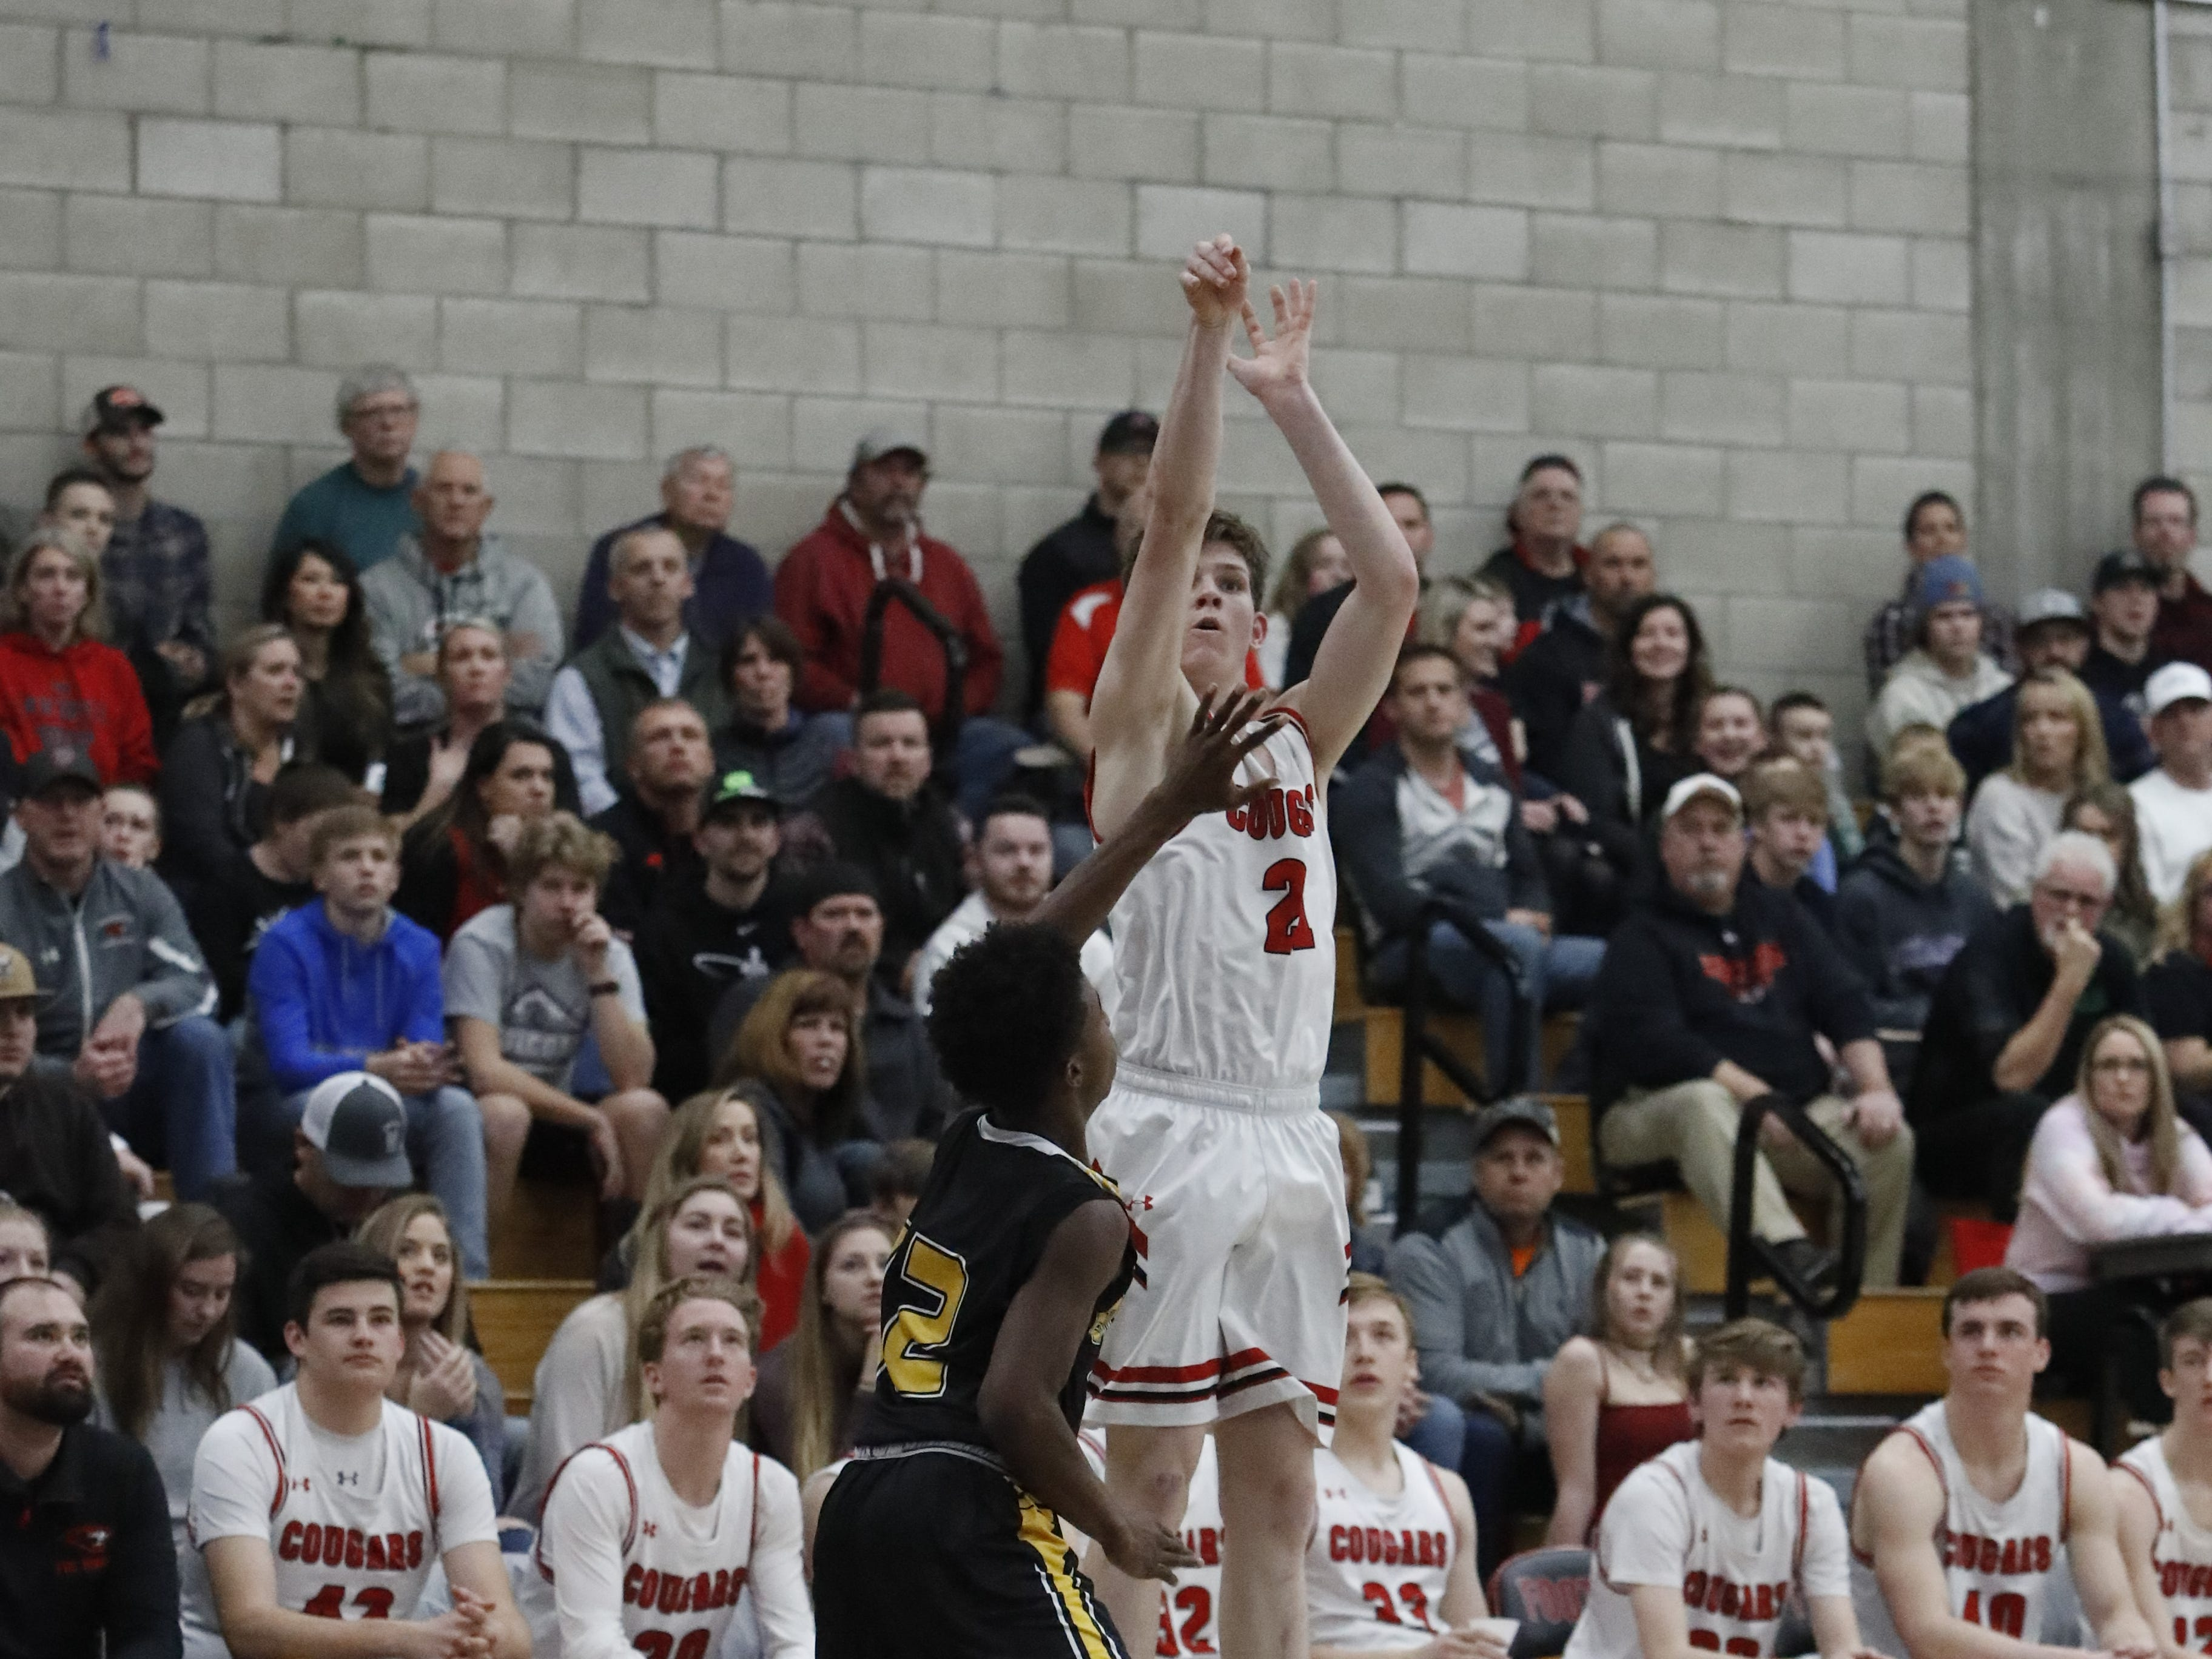 Foothill's Luke Lindsey shoots a three-pointer over an Enterprise defender during the Cougars' 55-50 win over the Hornets in the Division III Northern Section semifinals on Wednesday, Feb. 20.